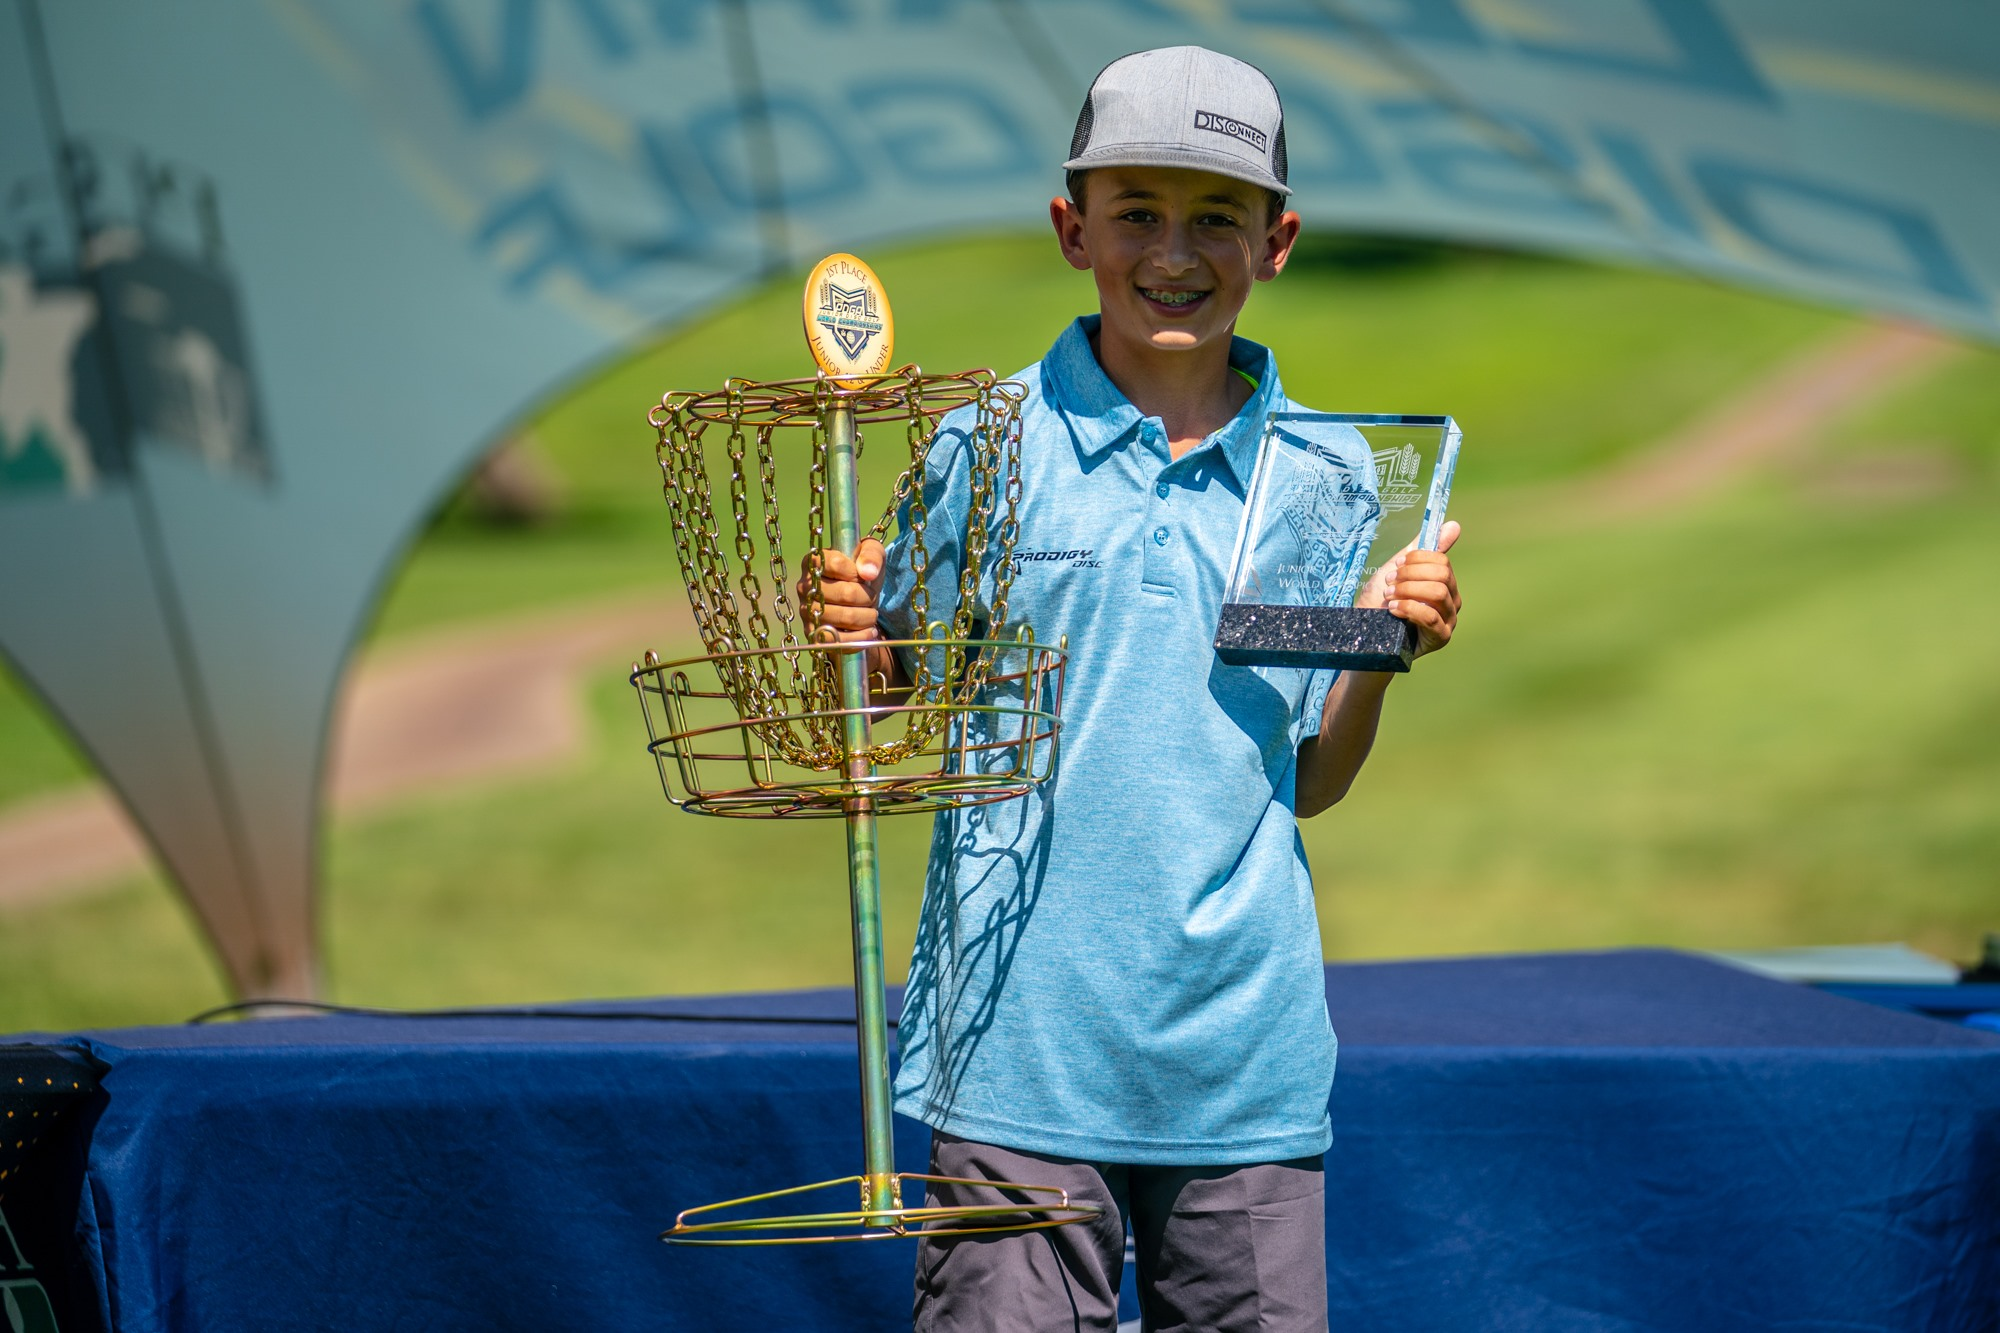 Kolby Sanchez accepting his trophies at the 2019 PDGA Junior World Championships.